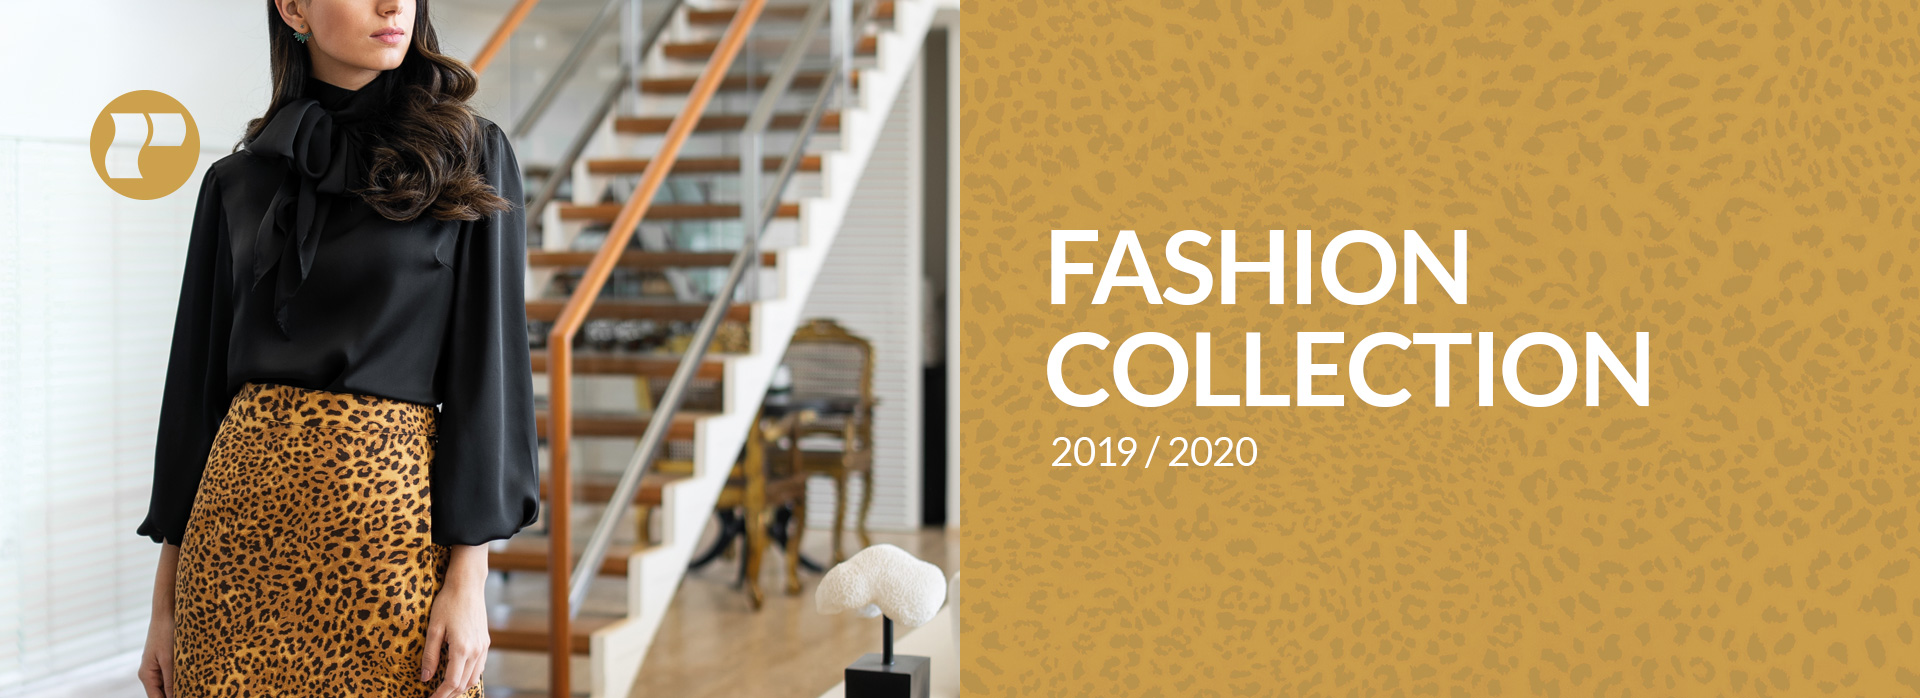 Fashion Collection 19/20